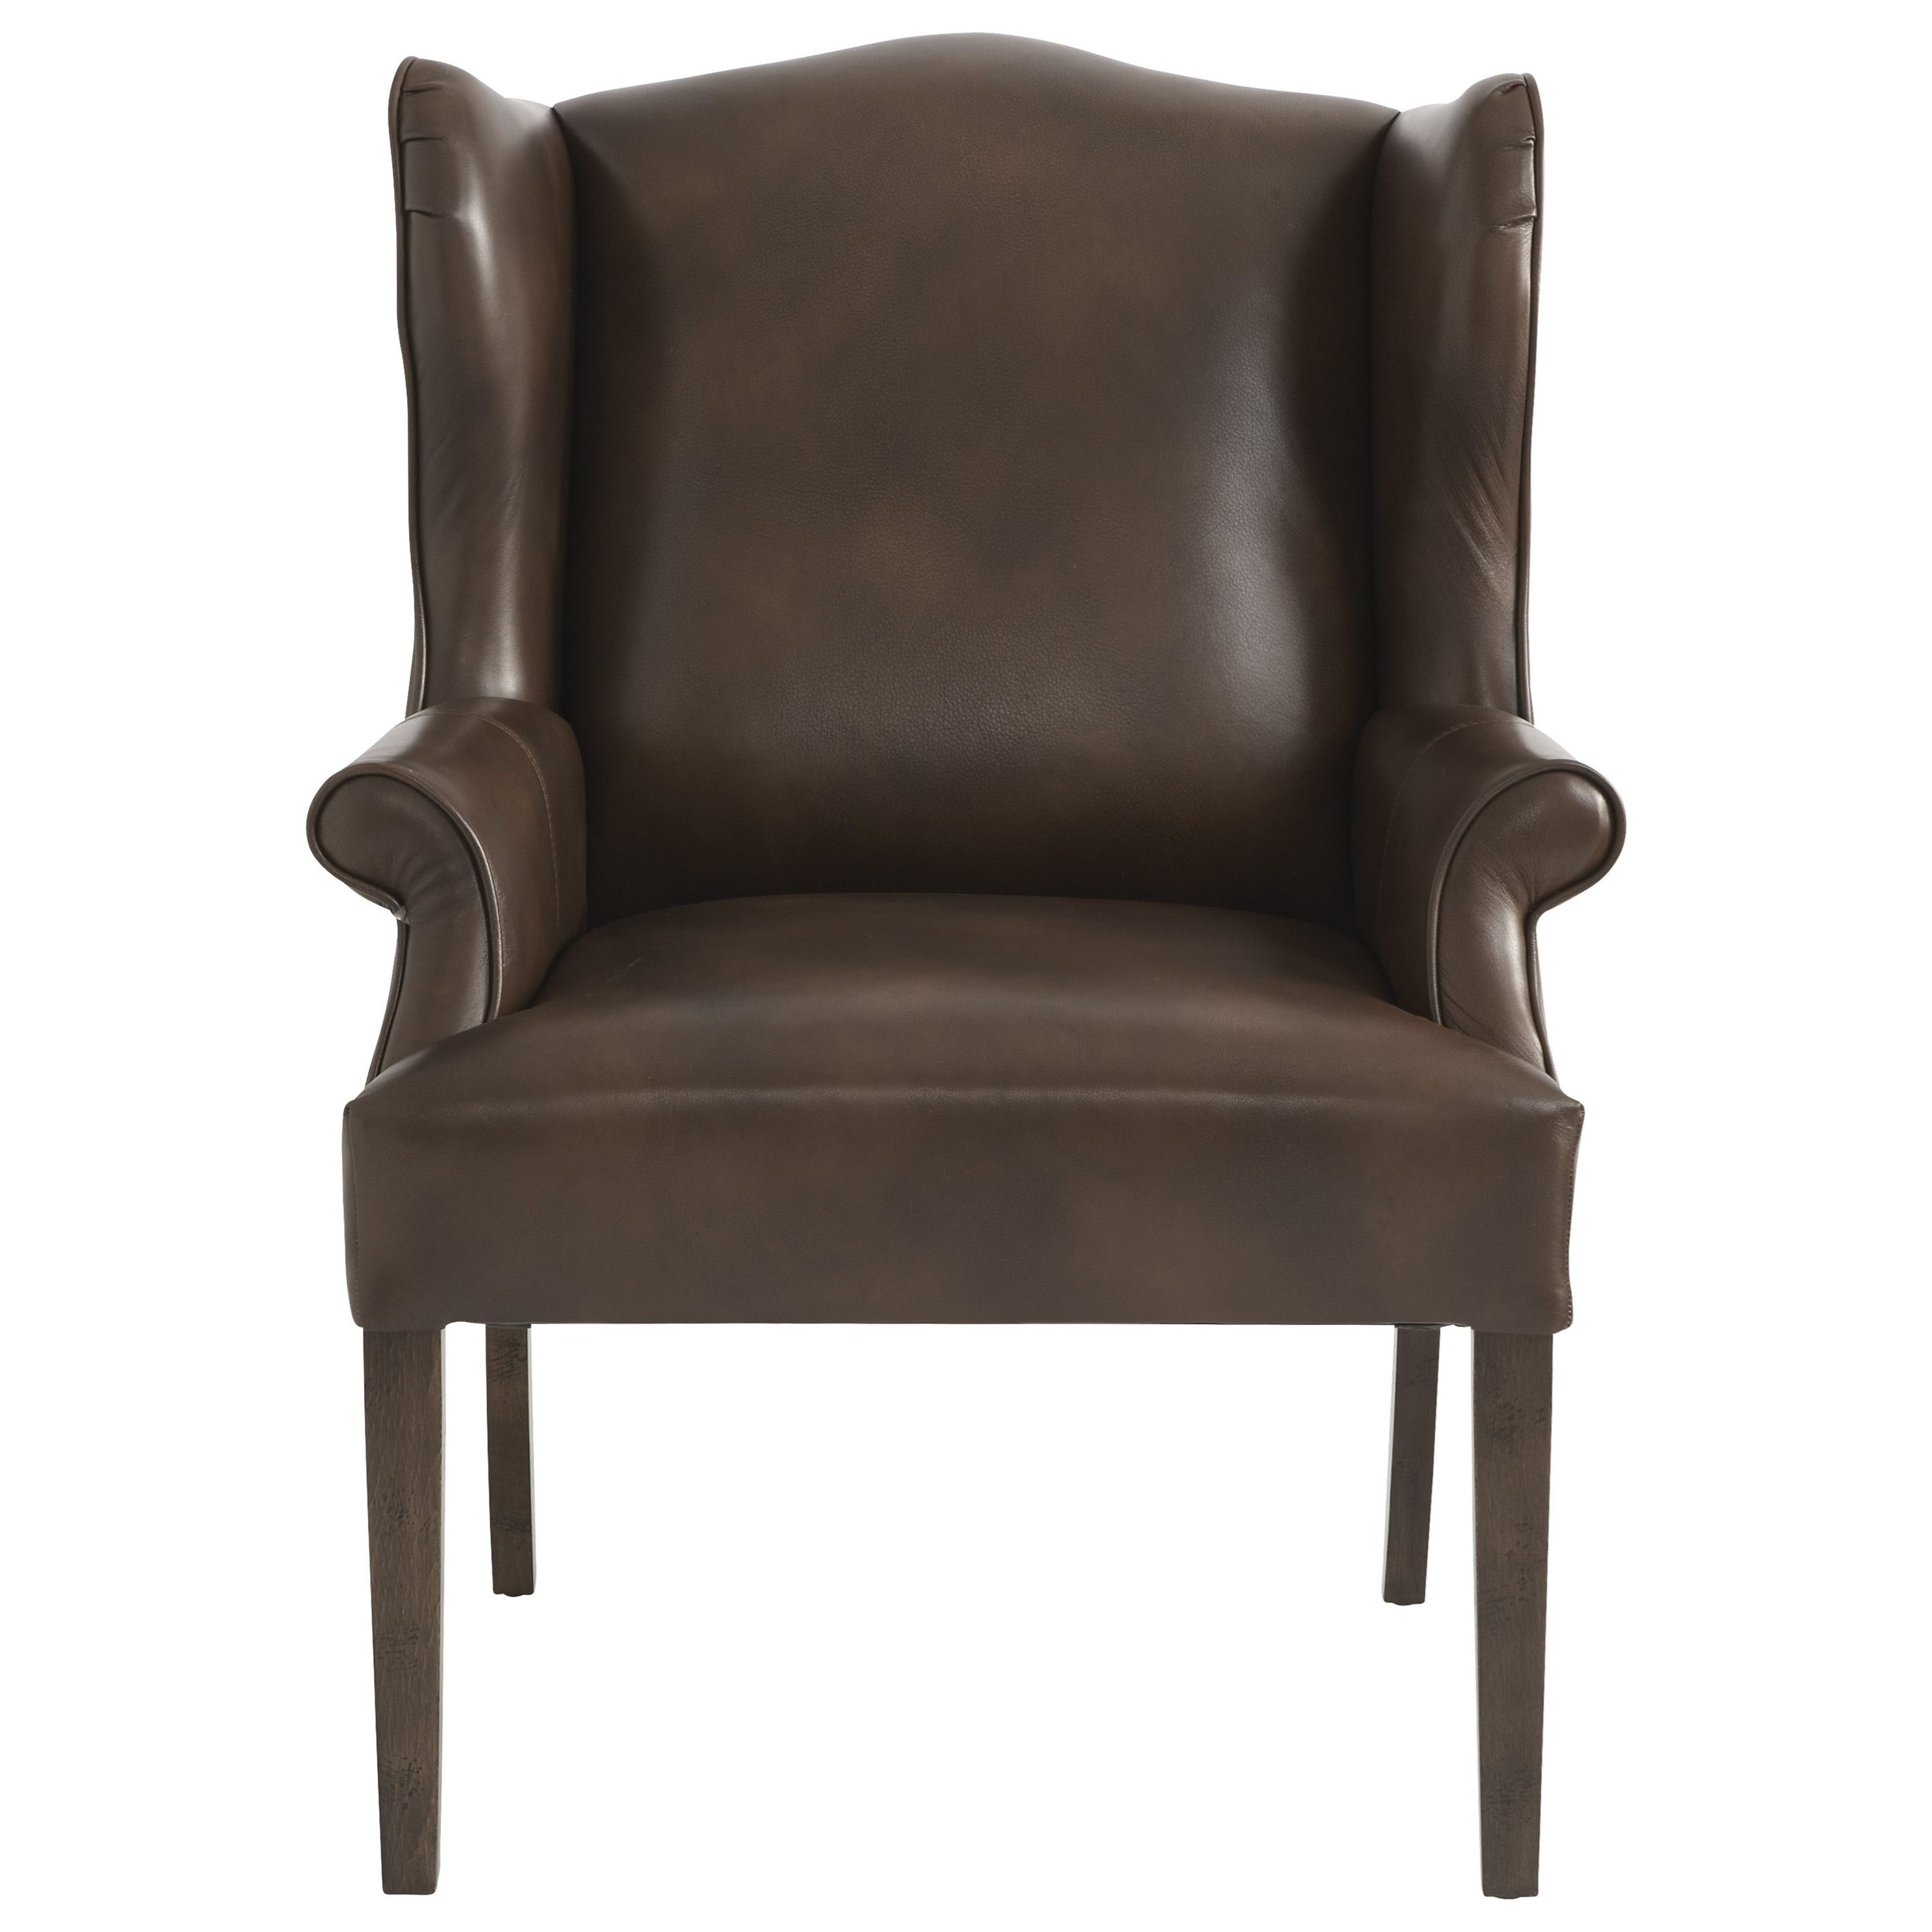 Arden Leather Dining Chair by Bassett at Fisher Home Furnishings